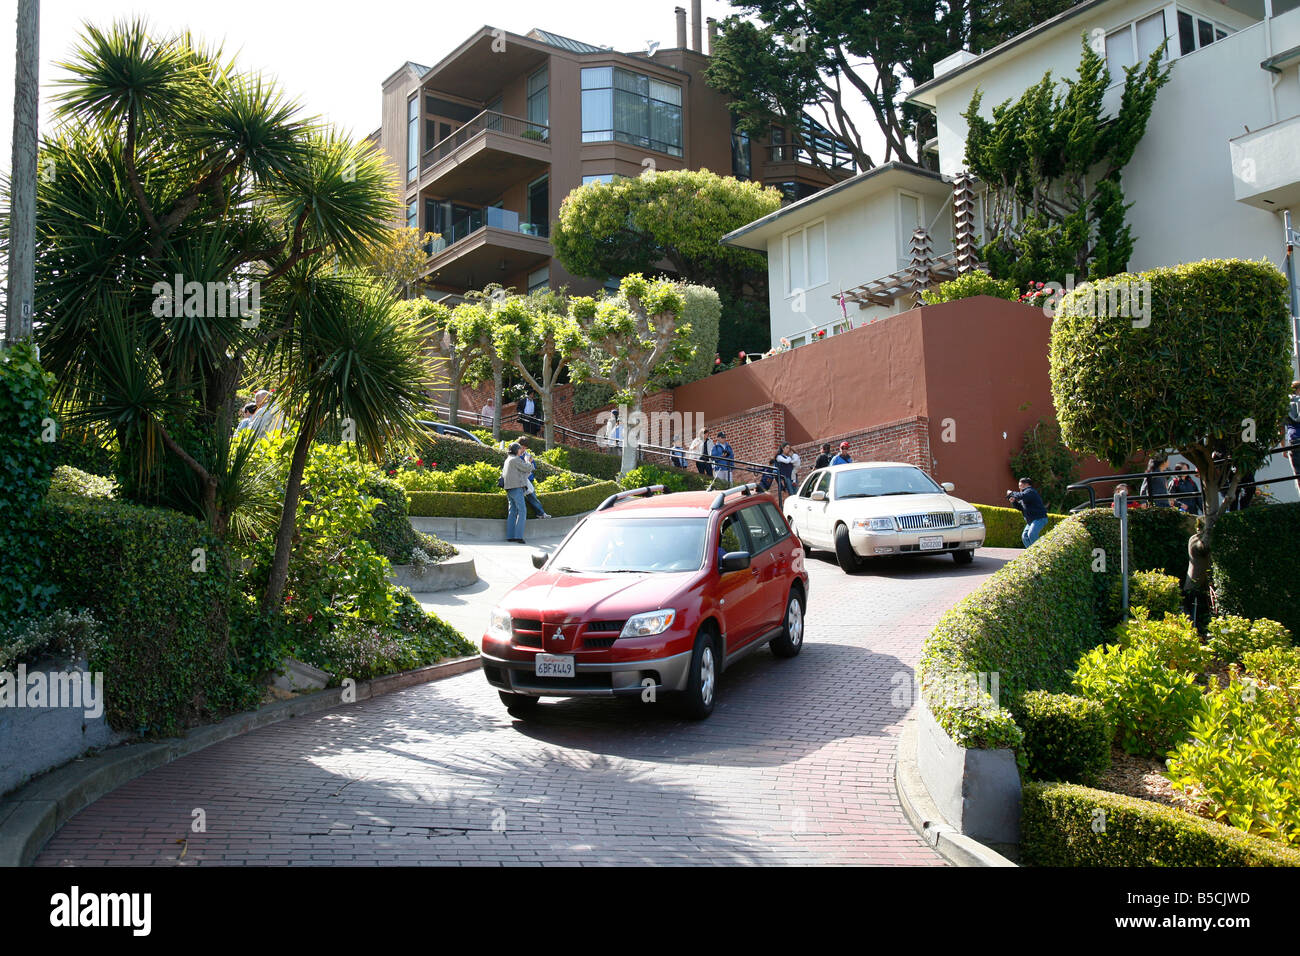 Downhill Lombard street - Stock Image